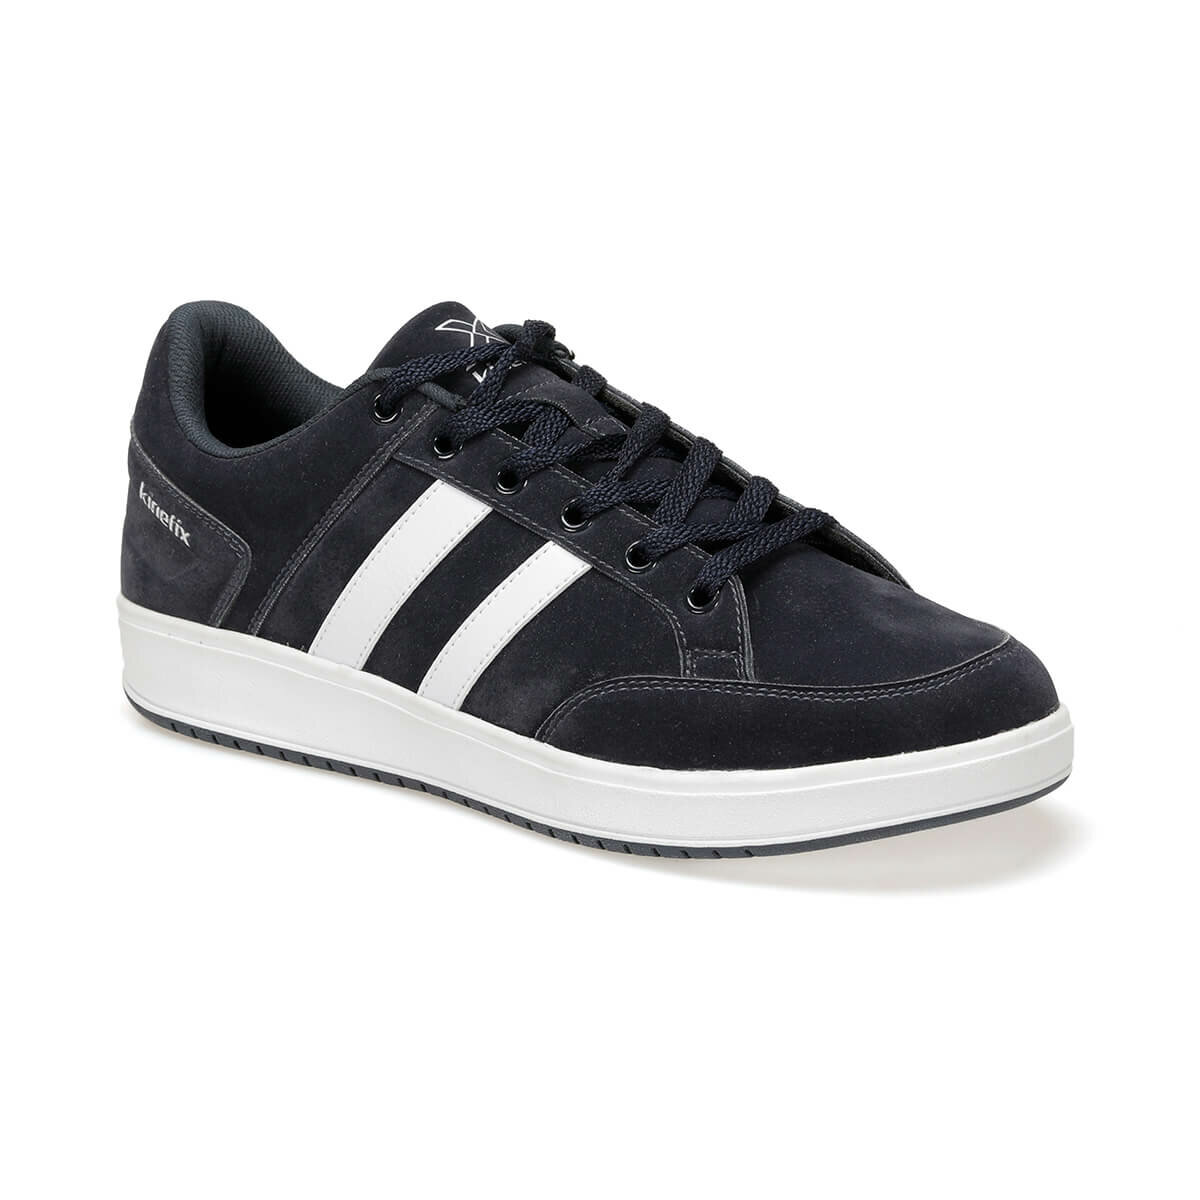 FLO KORT S M 9PR Navy Blue Men 'S Sneaker Shoes KINETIX